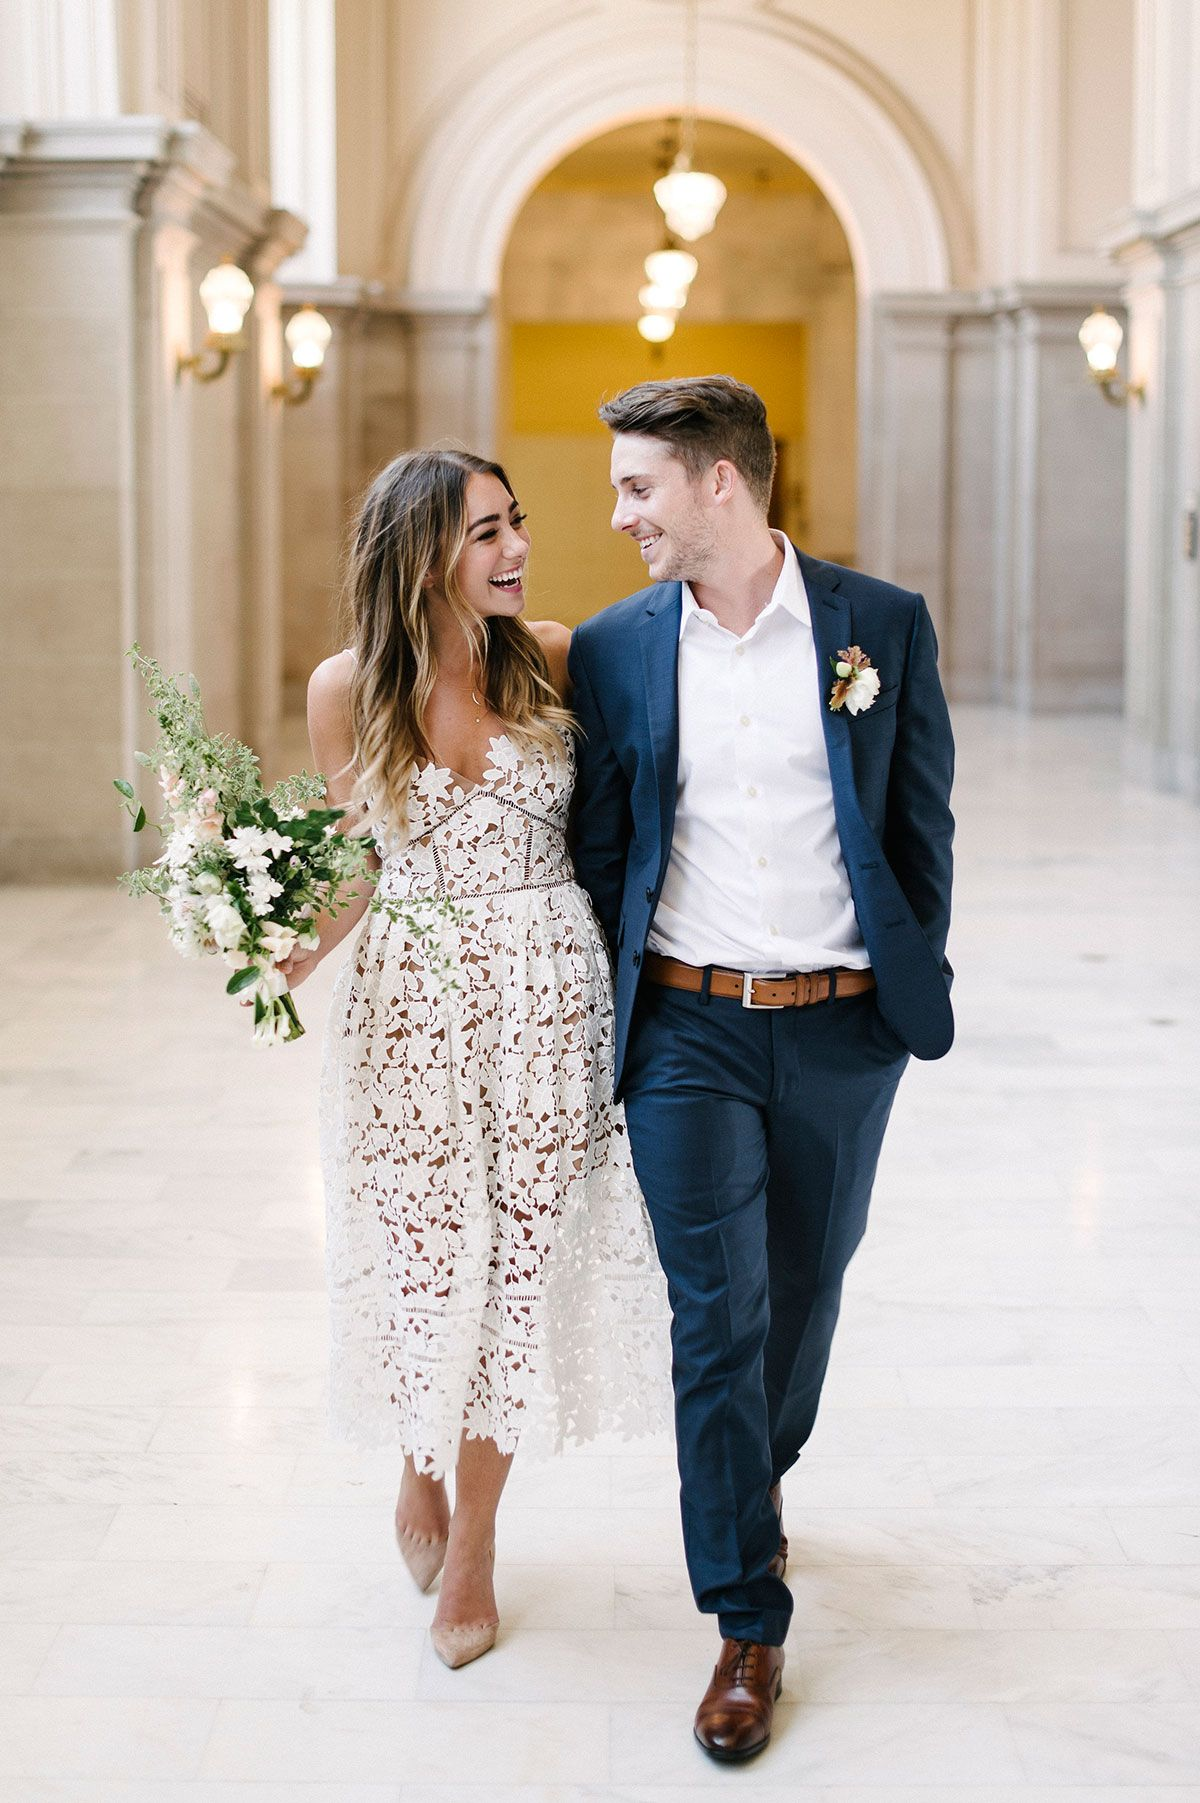 courthouse wedding dresses Ten City Hall Wedding Tips bride and groom wedding photography elopement ideas